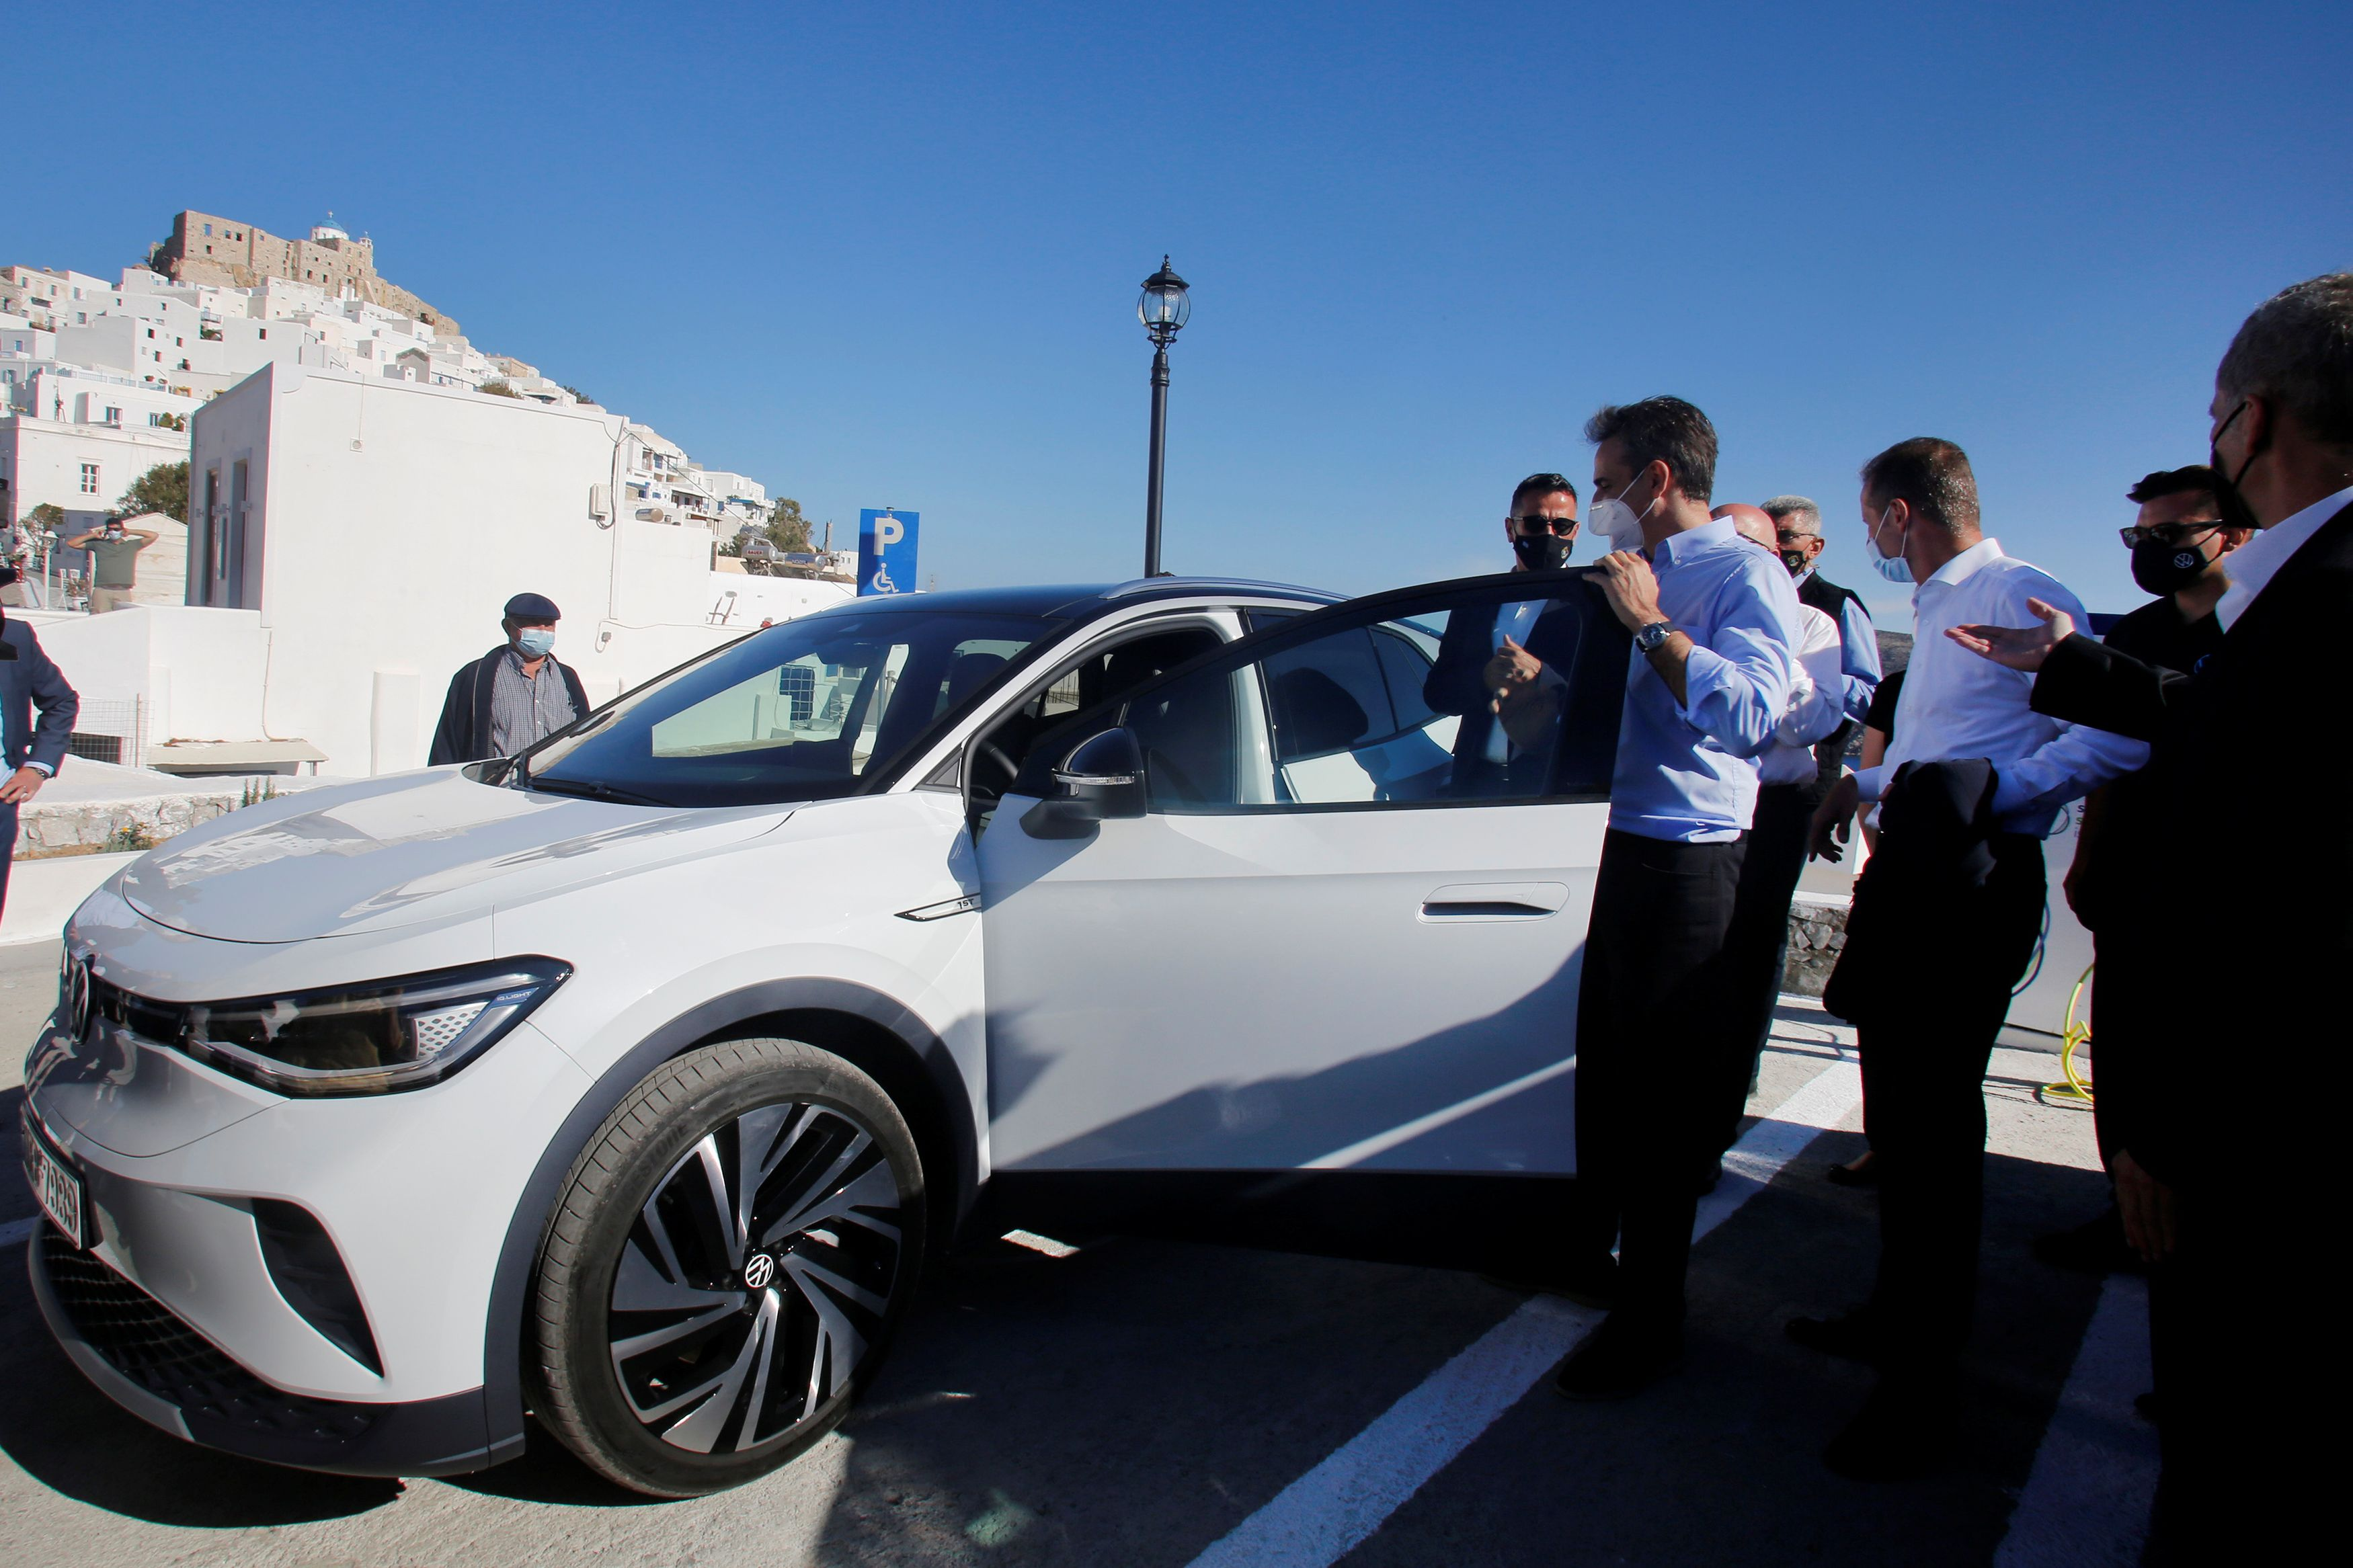 Greek Prime Minister Kyriakos Mitsotakis looks at a Volkswagen ID.4 electric car, during a delivery ceremony of service cars and chargers to the police and the port authority of the island of Astypalea, Greece, June 2, 2021. [Alexandros Vlachos/Pool via Reuters]